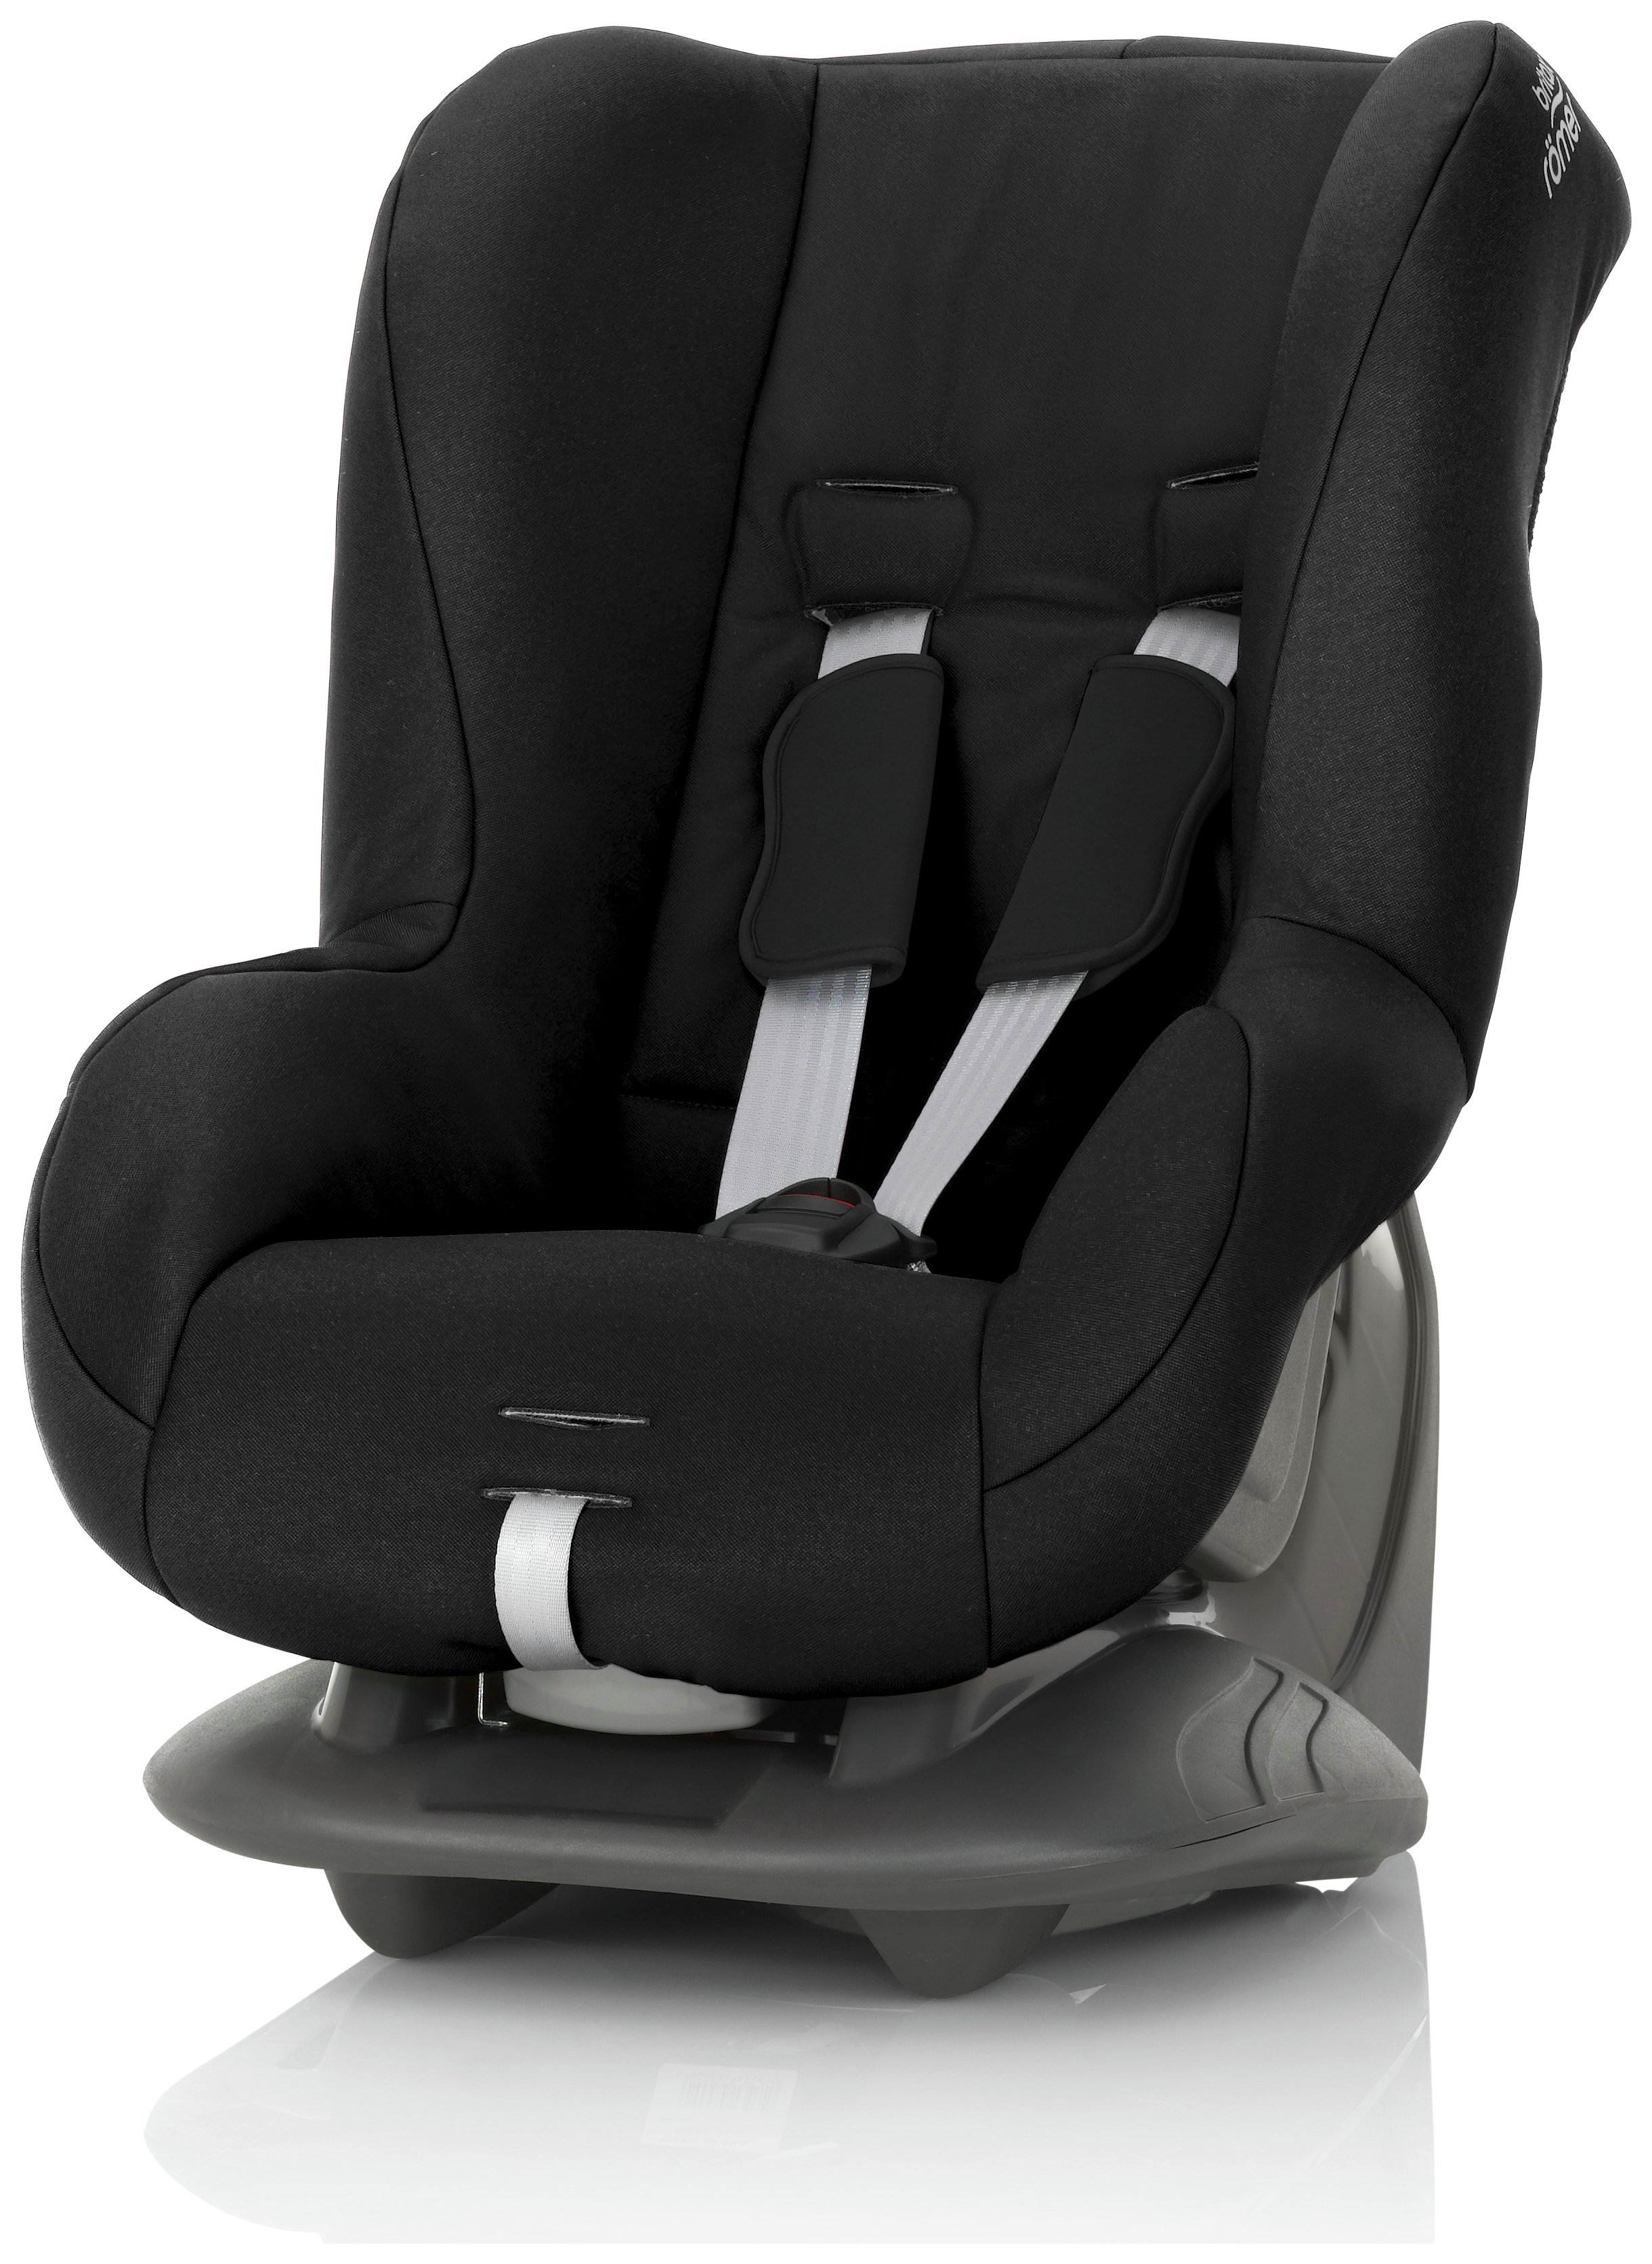 Image of Britax Eclipse-Group 1 Black - Car Seat